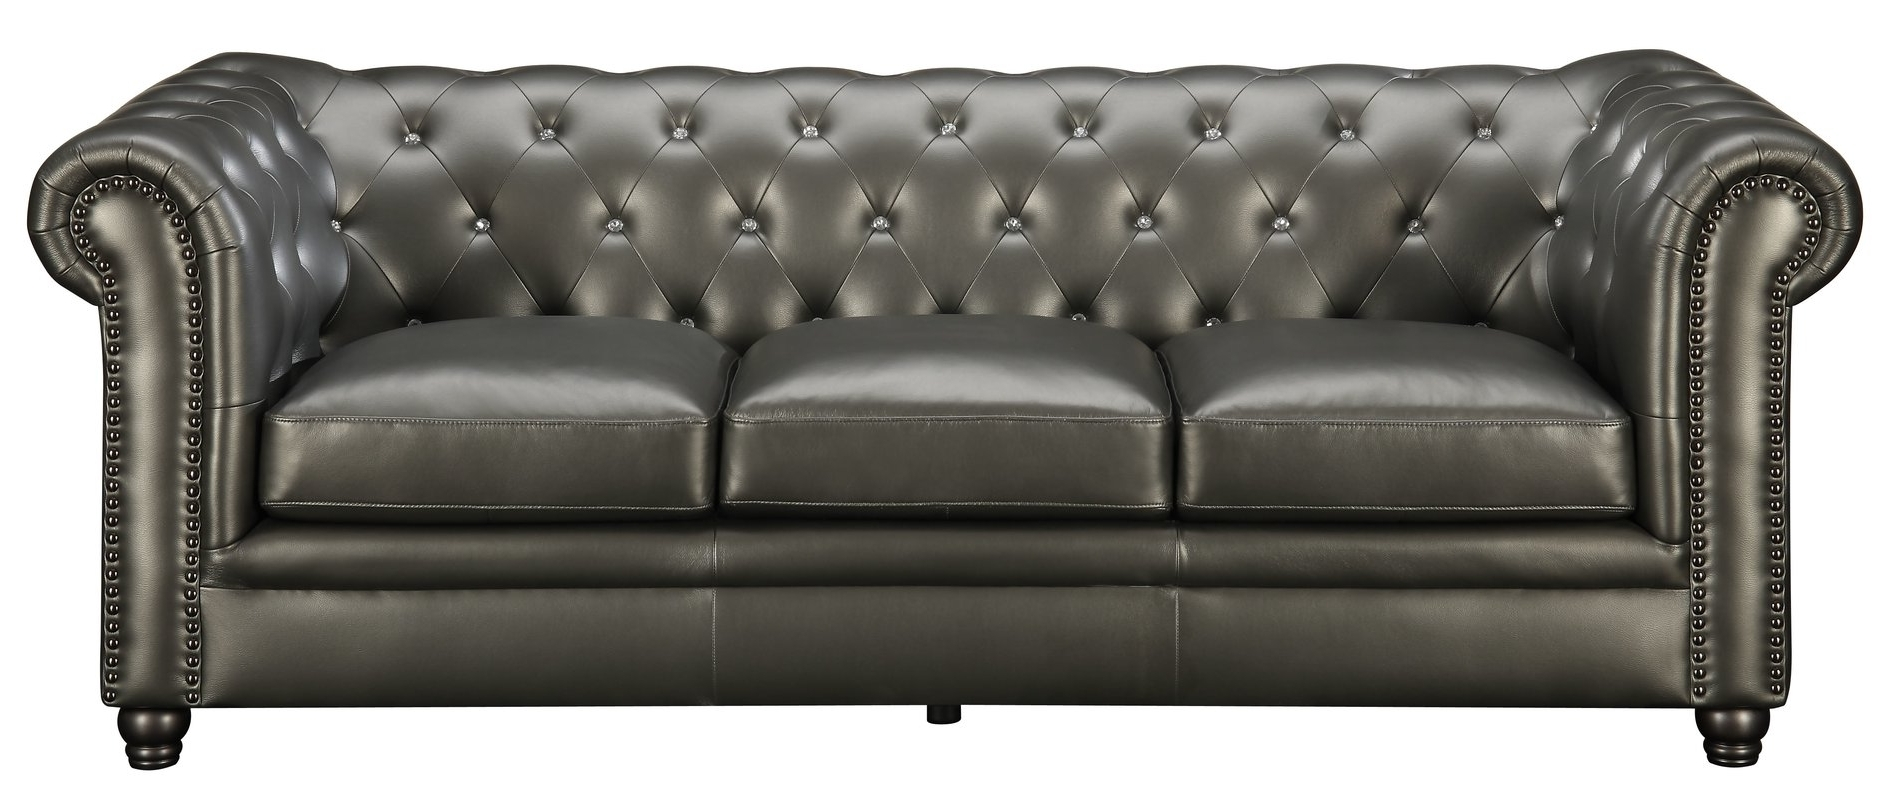 Fashionable Chesterfield Sofas With Darby Home Co Vanallen Leather Chesterfield Sofa & Reviews (View 14 of 20)